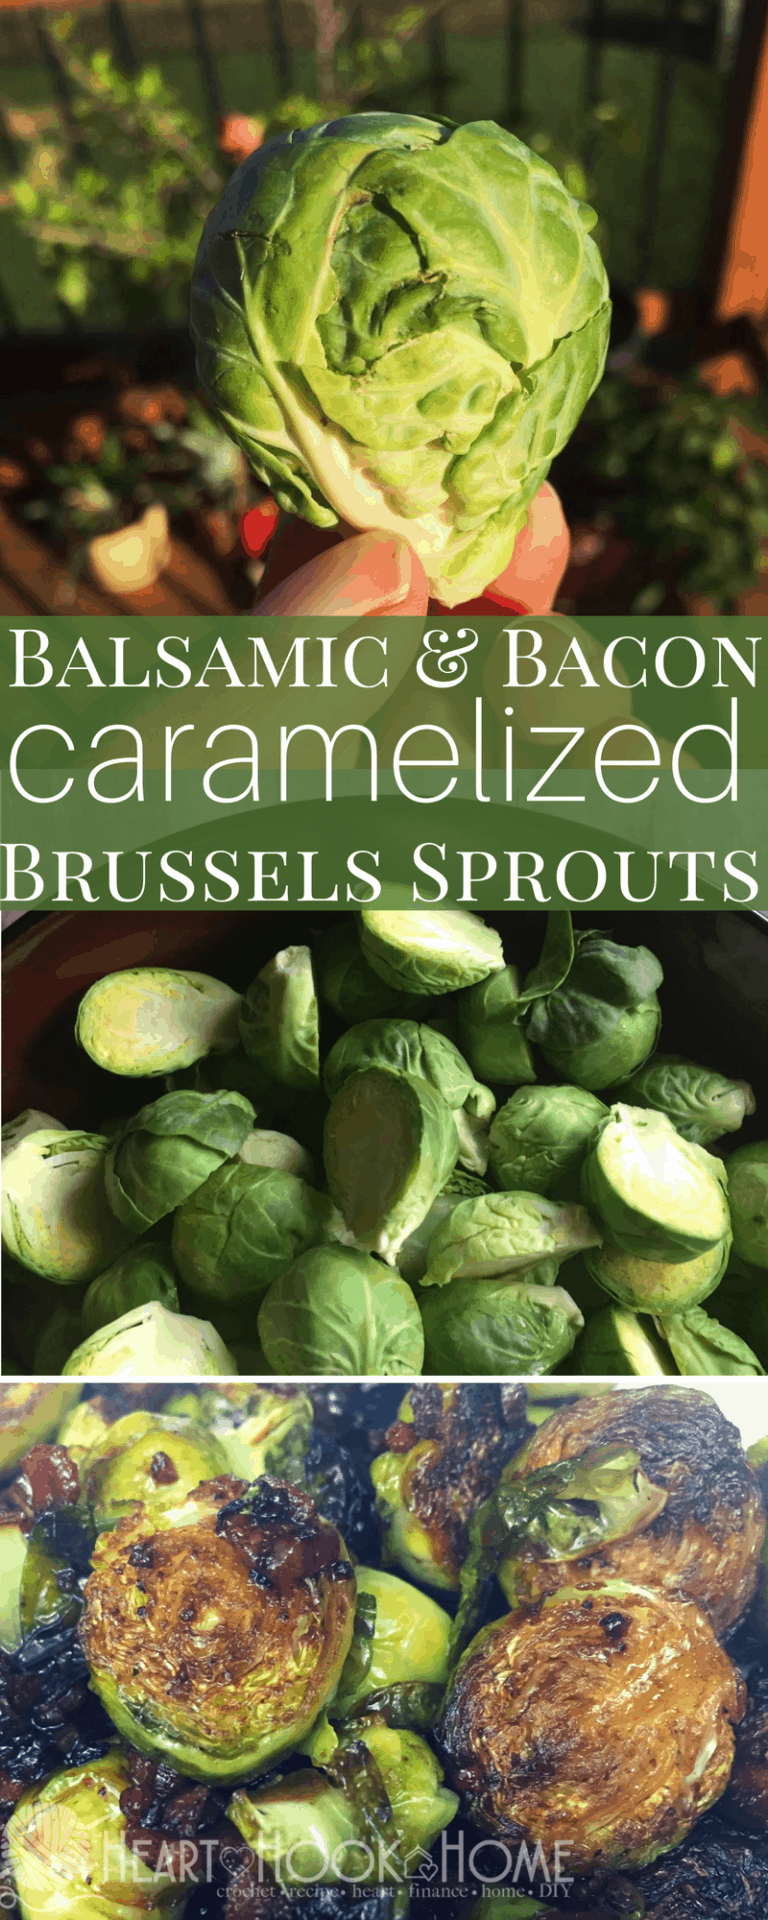 Caramelized Balsamic & Bacon Brussels Sprouts